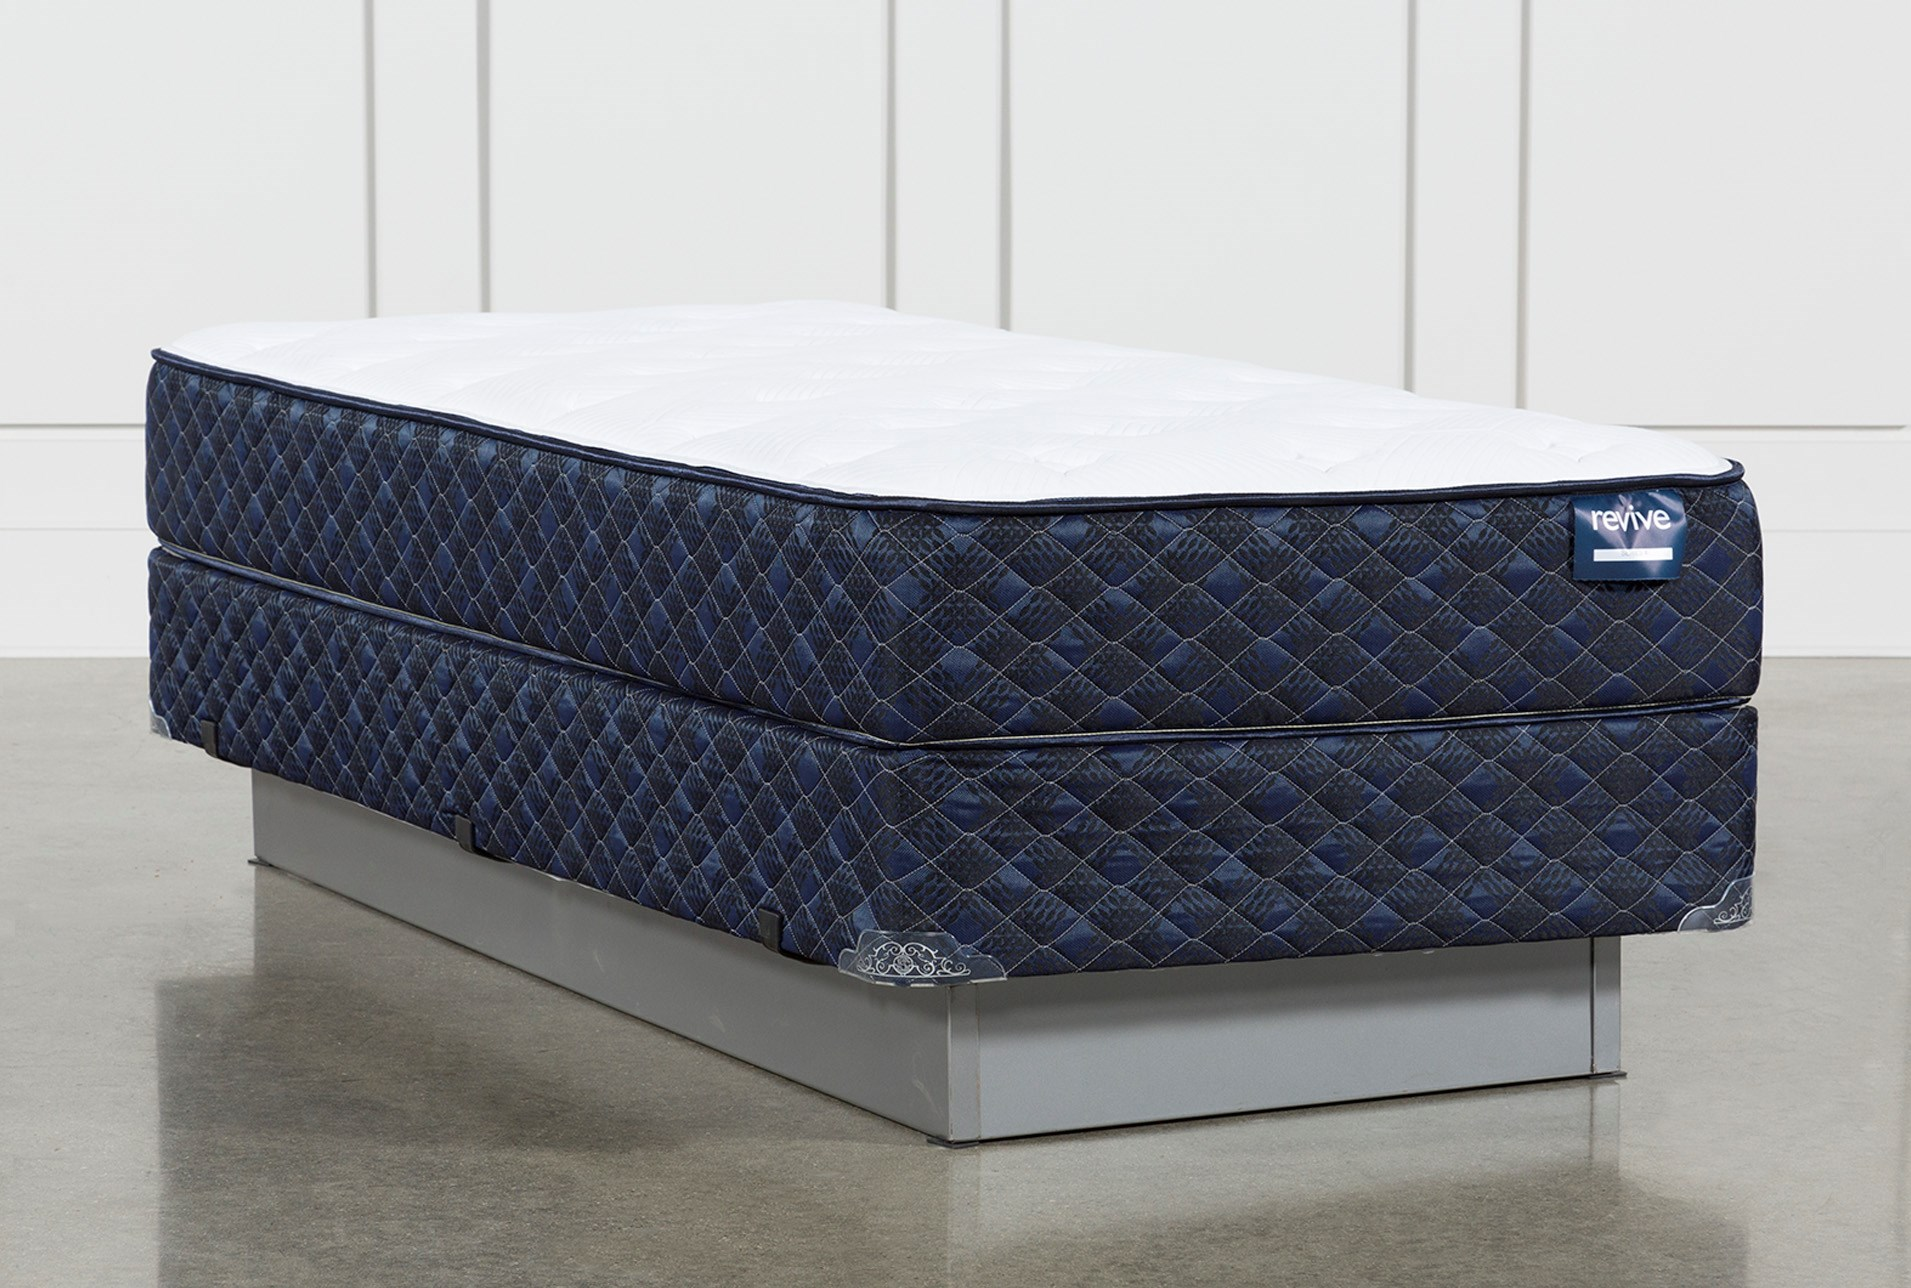 blue twin mattress. Series 4 Twin Mattress With Foundation (Qty: 1) Has Been Successfully Added To Your Cart. Blue L